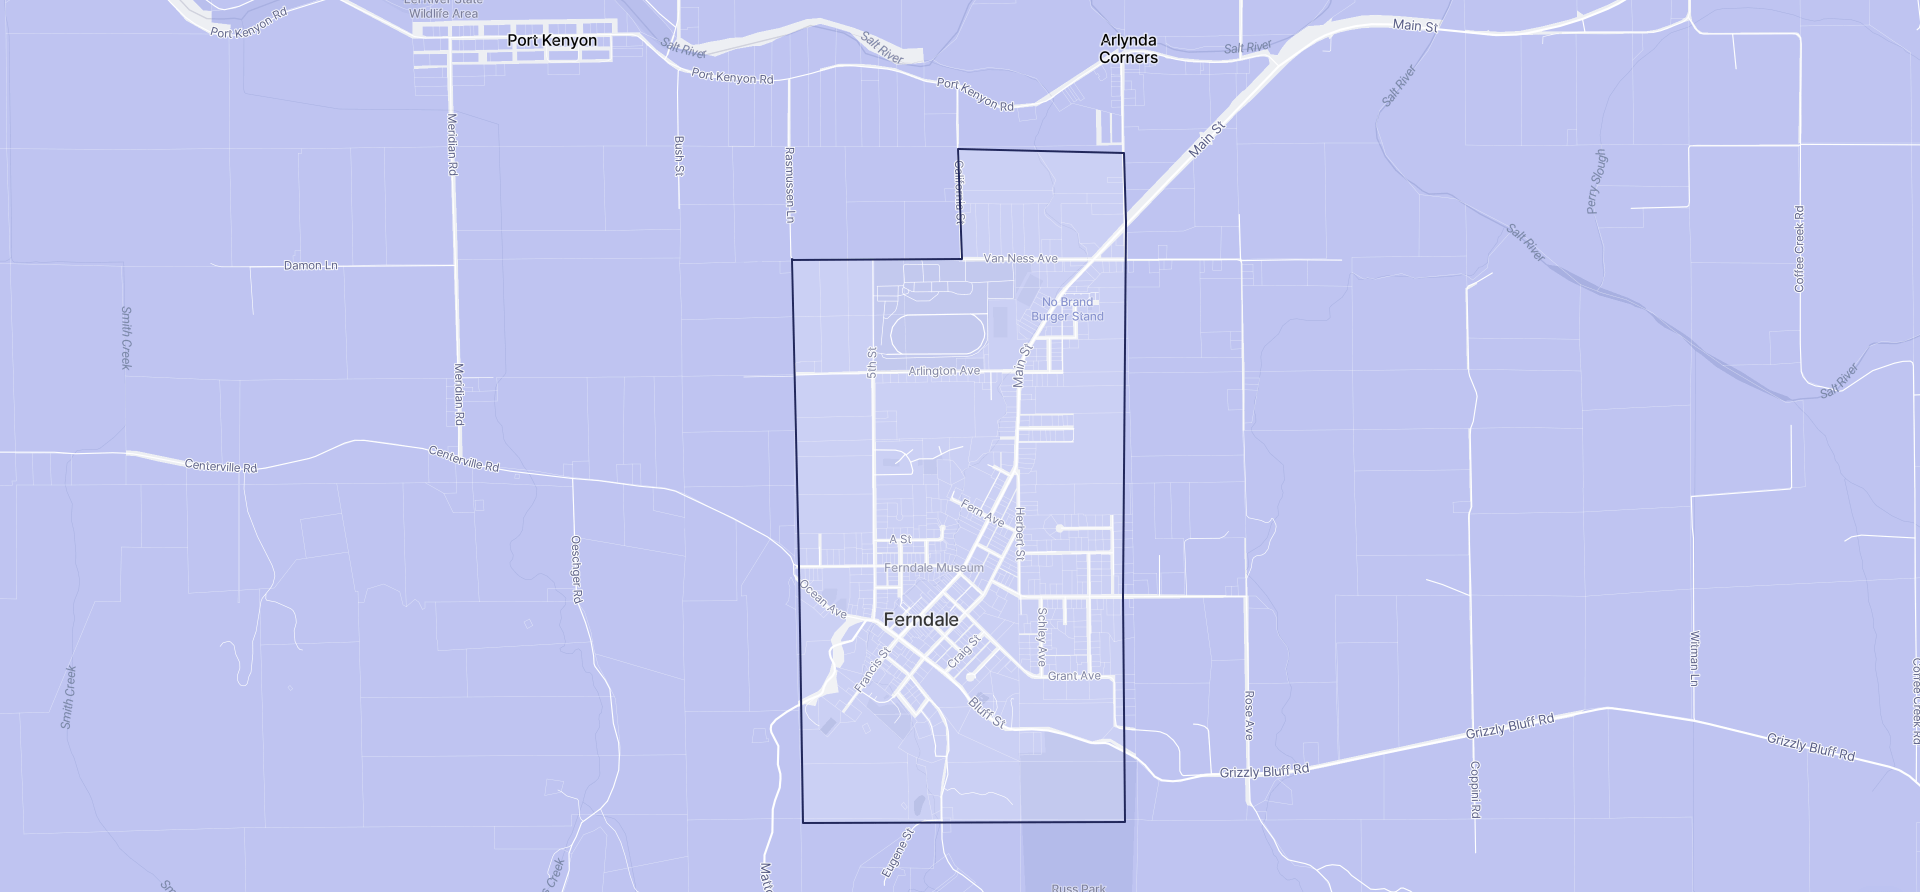 Image of Ferndale boundaries on a map.